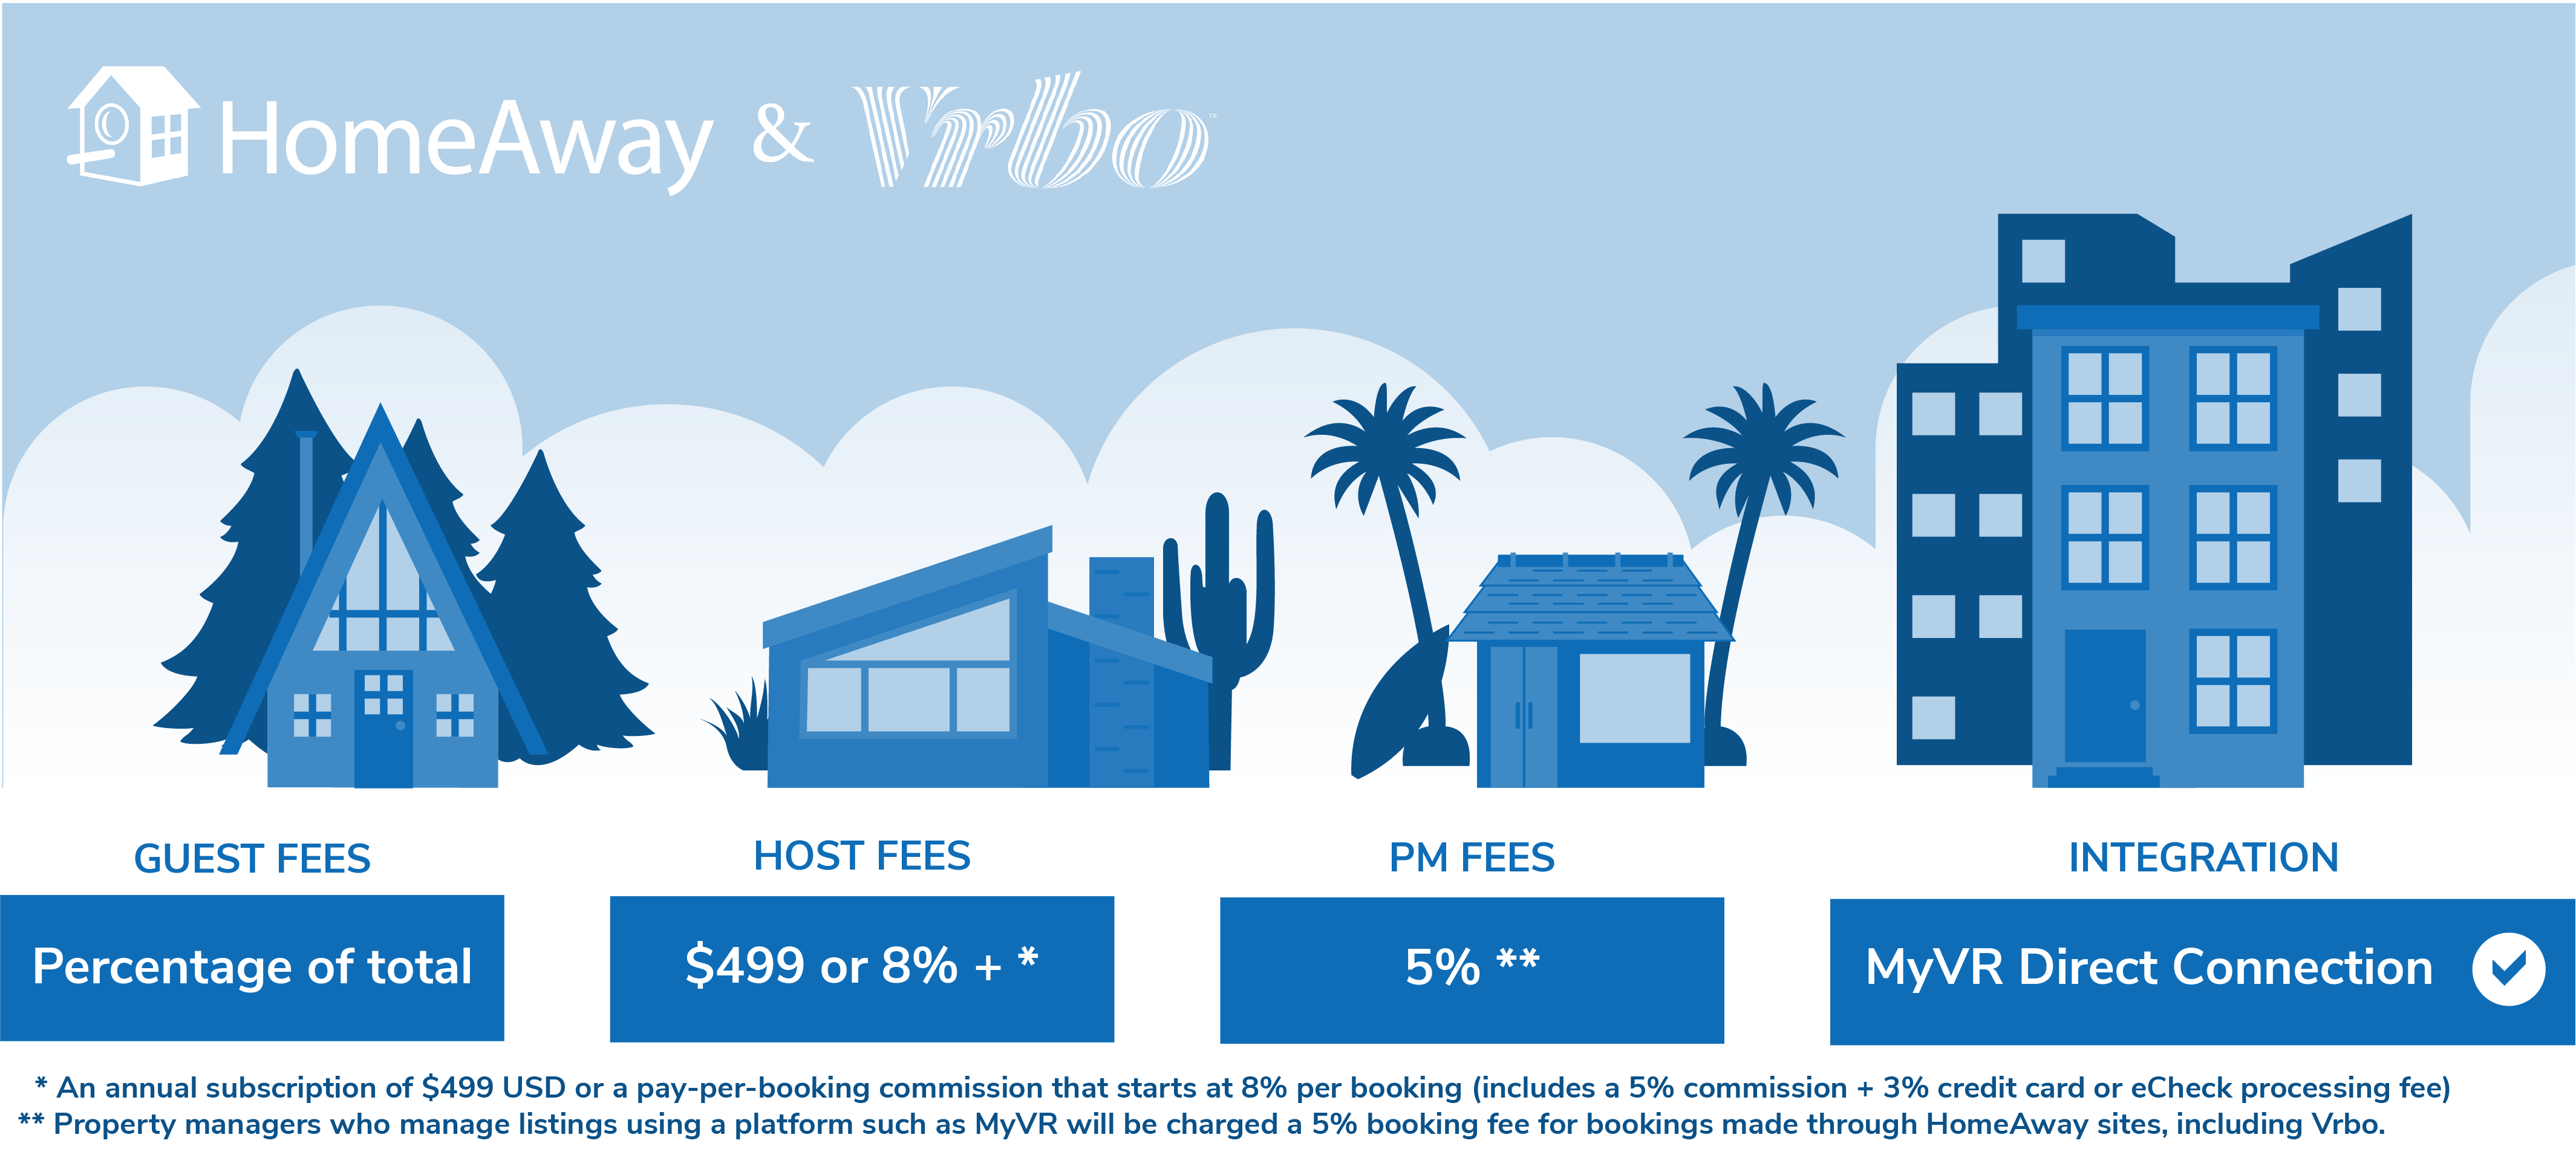 HomeAway, Vrbo Host Fees, Guest Fees - MyVR